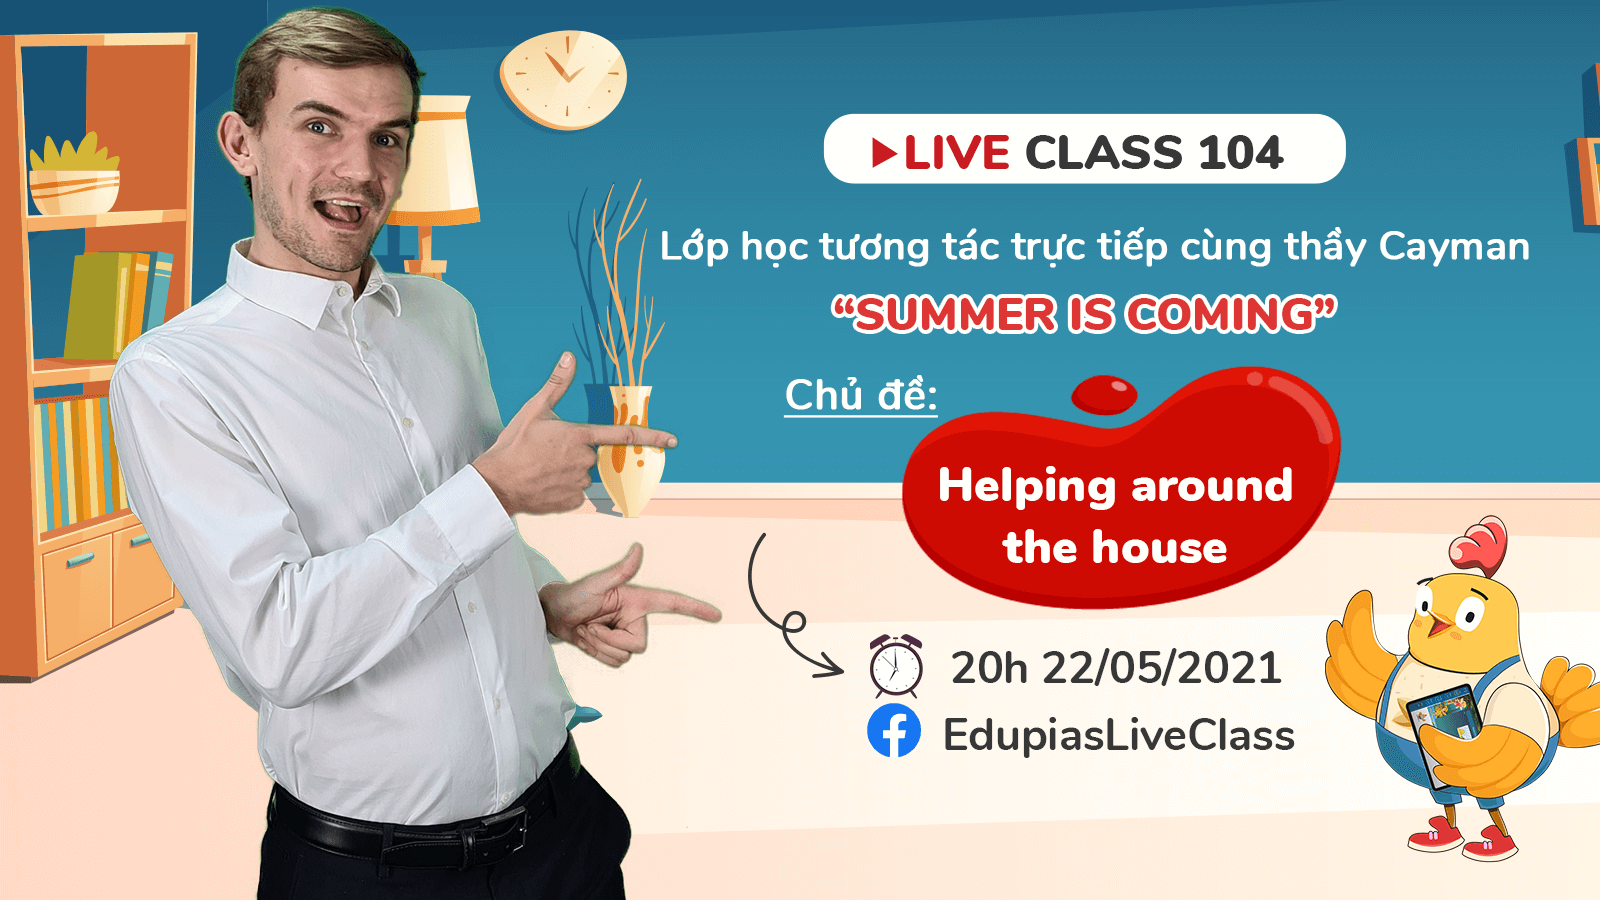 Live class tuần 104 - Chủ đề: Helping around the house